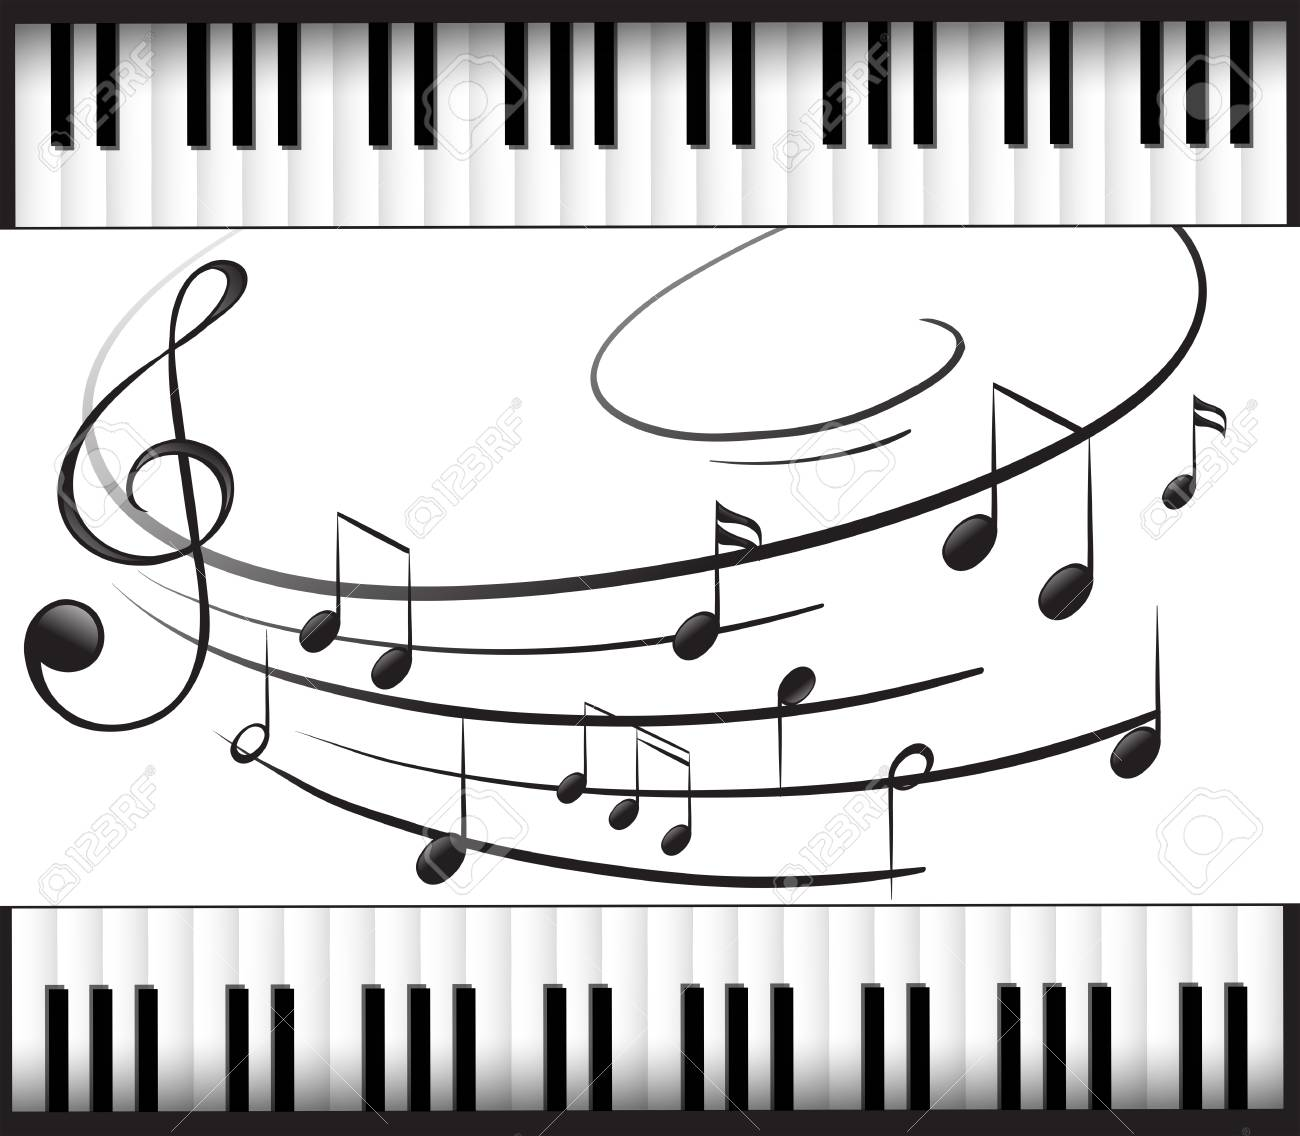 background template with piano keyboard and music notes illustration